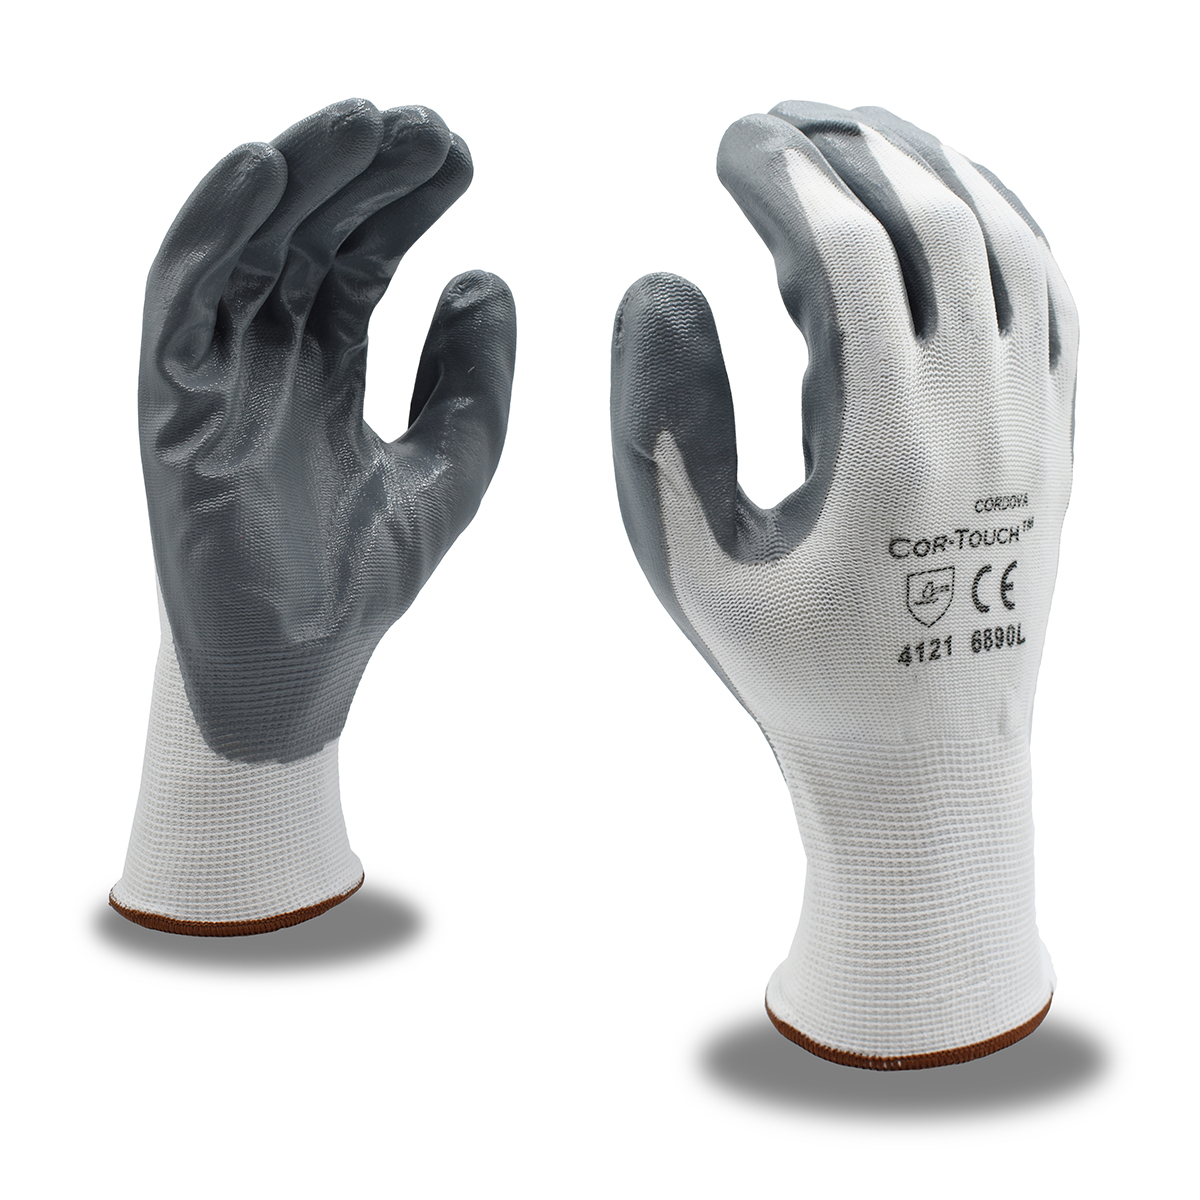 Cordova 6890 Cor-Touch™ 13-Gauge Flat Nitrile Palm Coated Gloves